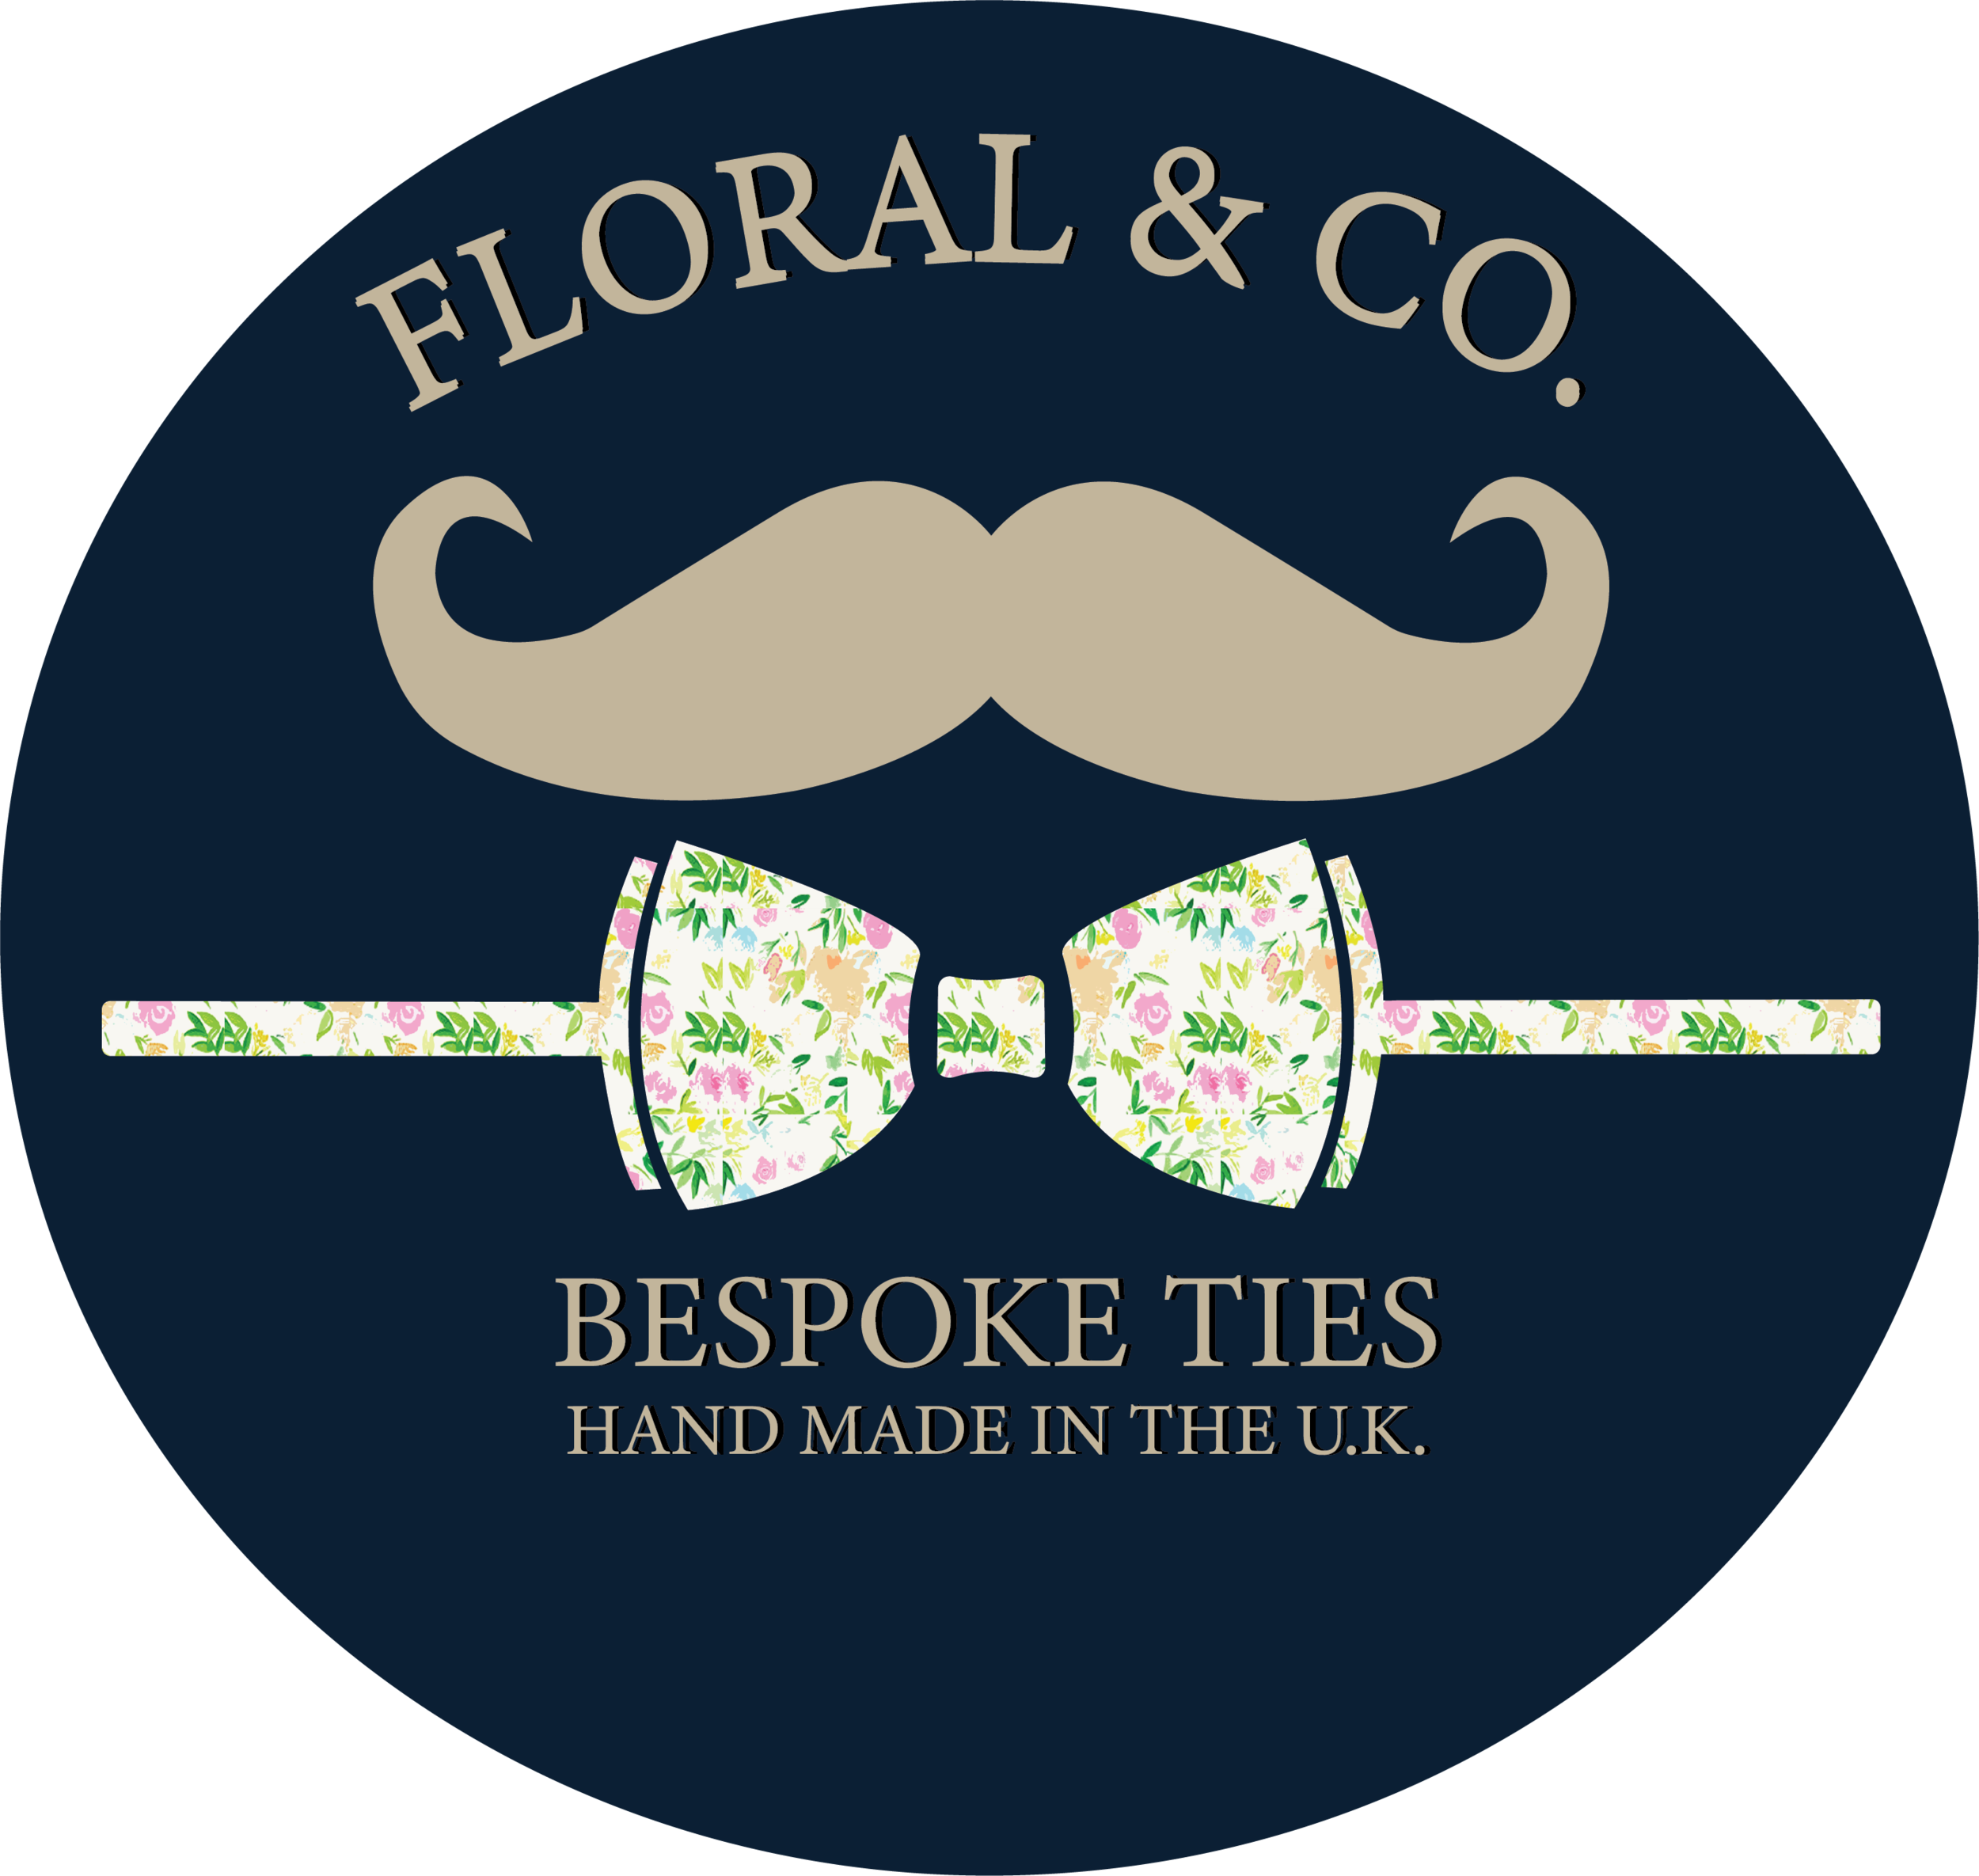 Our Story… - Floral&Co is a British bespoke men's tie company, our creative design team craft uniquely designed tie's with the finest material and stitch techniques. Whether you are wanting a unique gift for that special someone or needing an edge to your outfit we have it all. With a wide variety of ties to choose from, you will not want to go anywhere else. The best part is that all of our products are 100% handmade and use sustainable high-quality fabric's that are sourced in the UK helping tackle fabric waste by upcycling unwanted fabric.